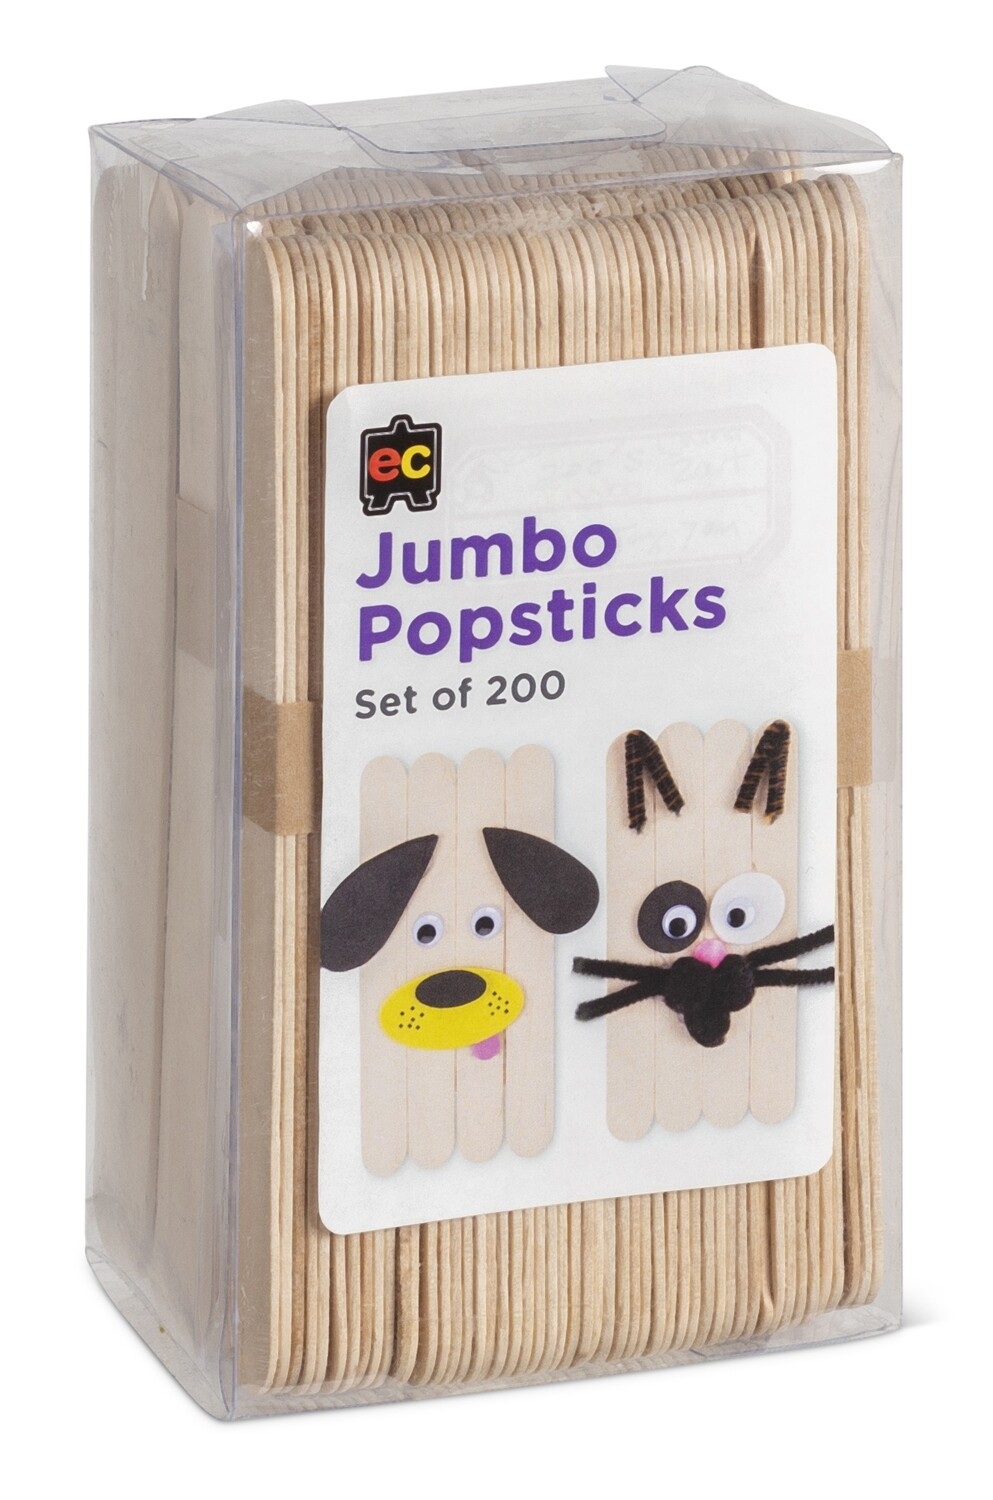 Jumbo Popsticks Natural Packet 200